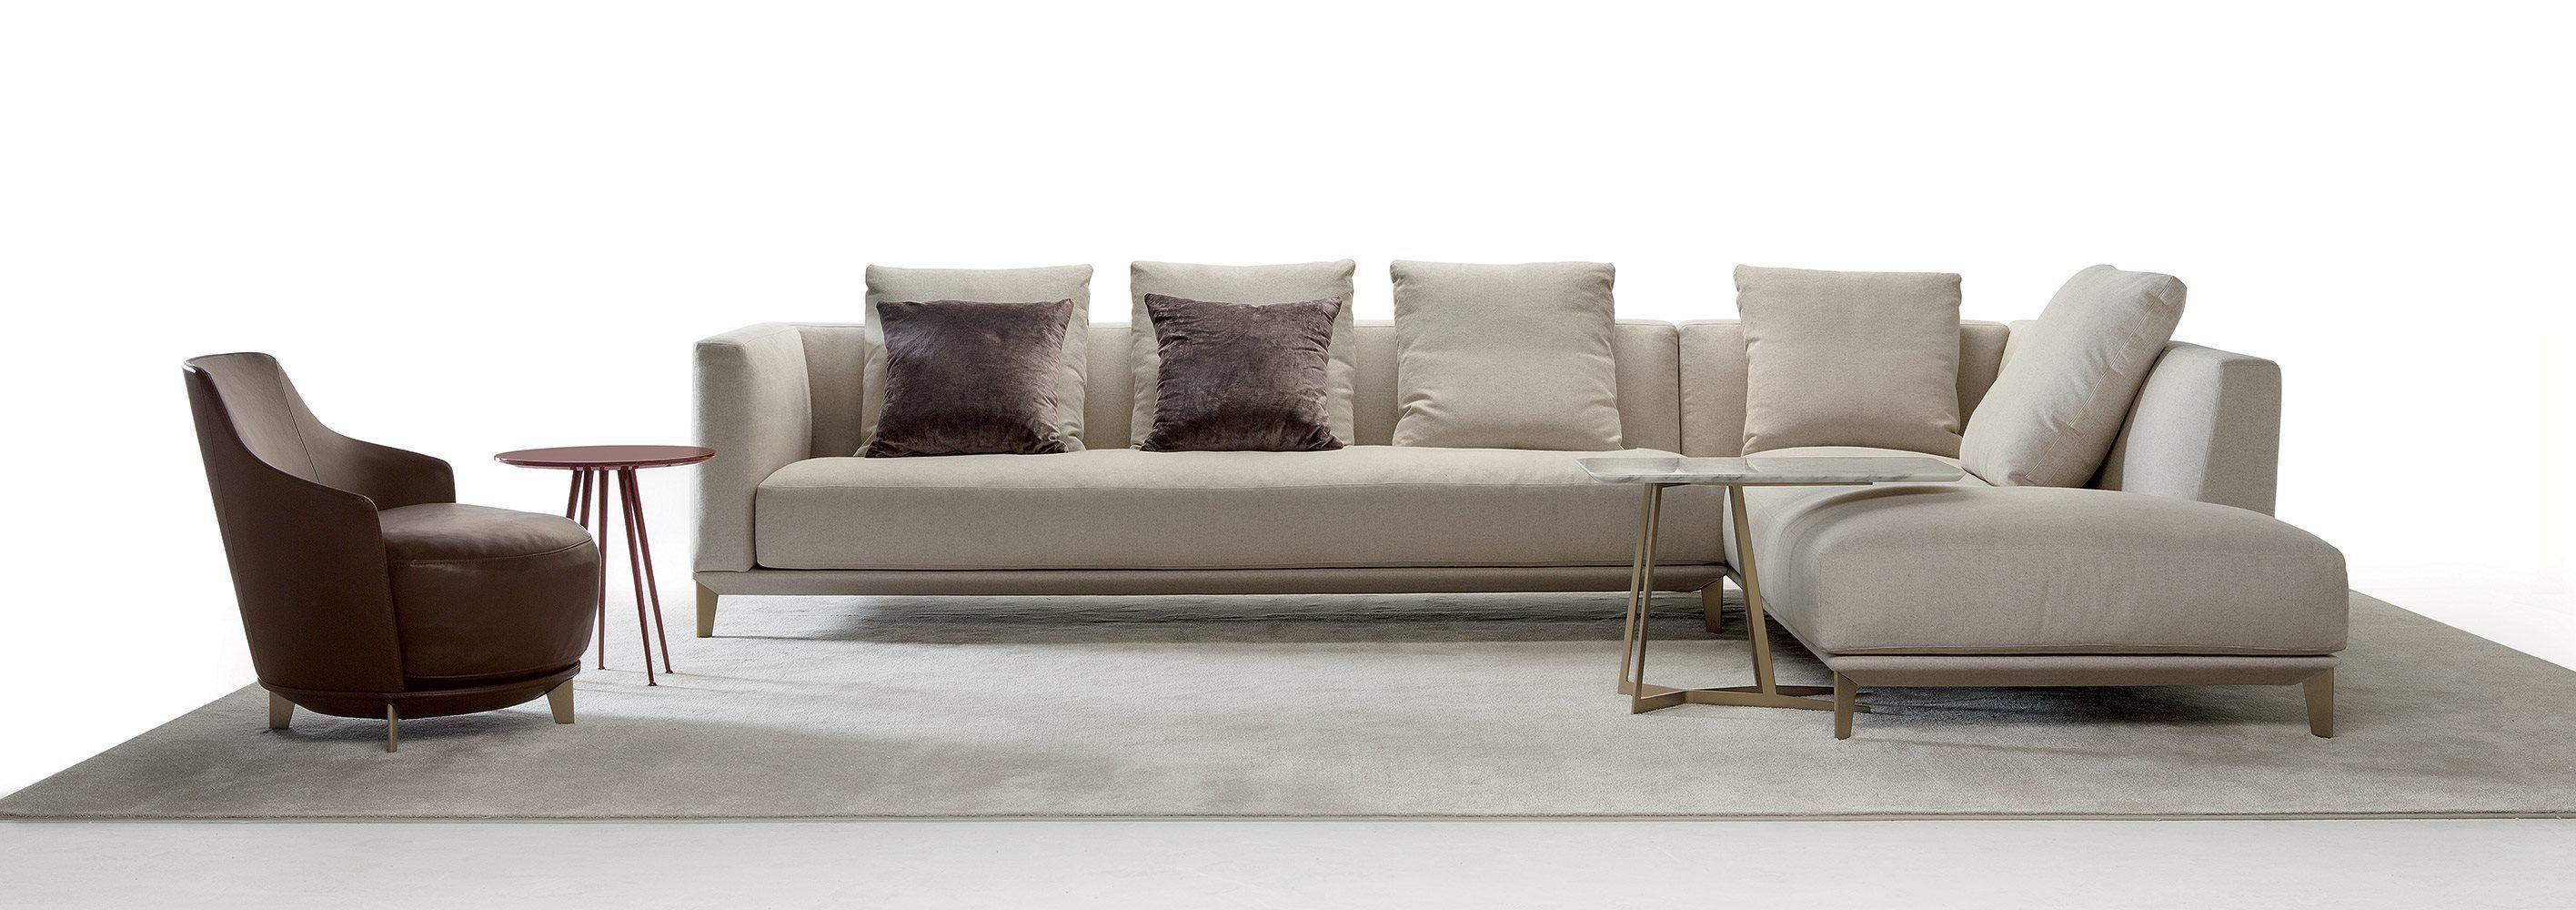 Corner Sofa / Modular / Contemporary / Fabric – Dylancastello Throughout Contemporary Fabric Sofas (Image 8 of 20)